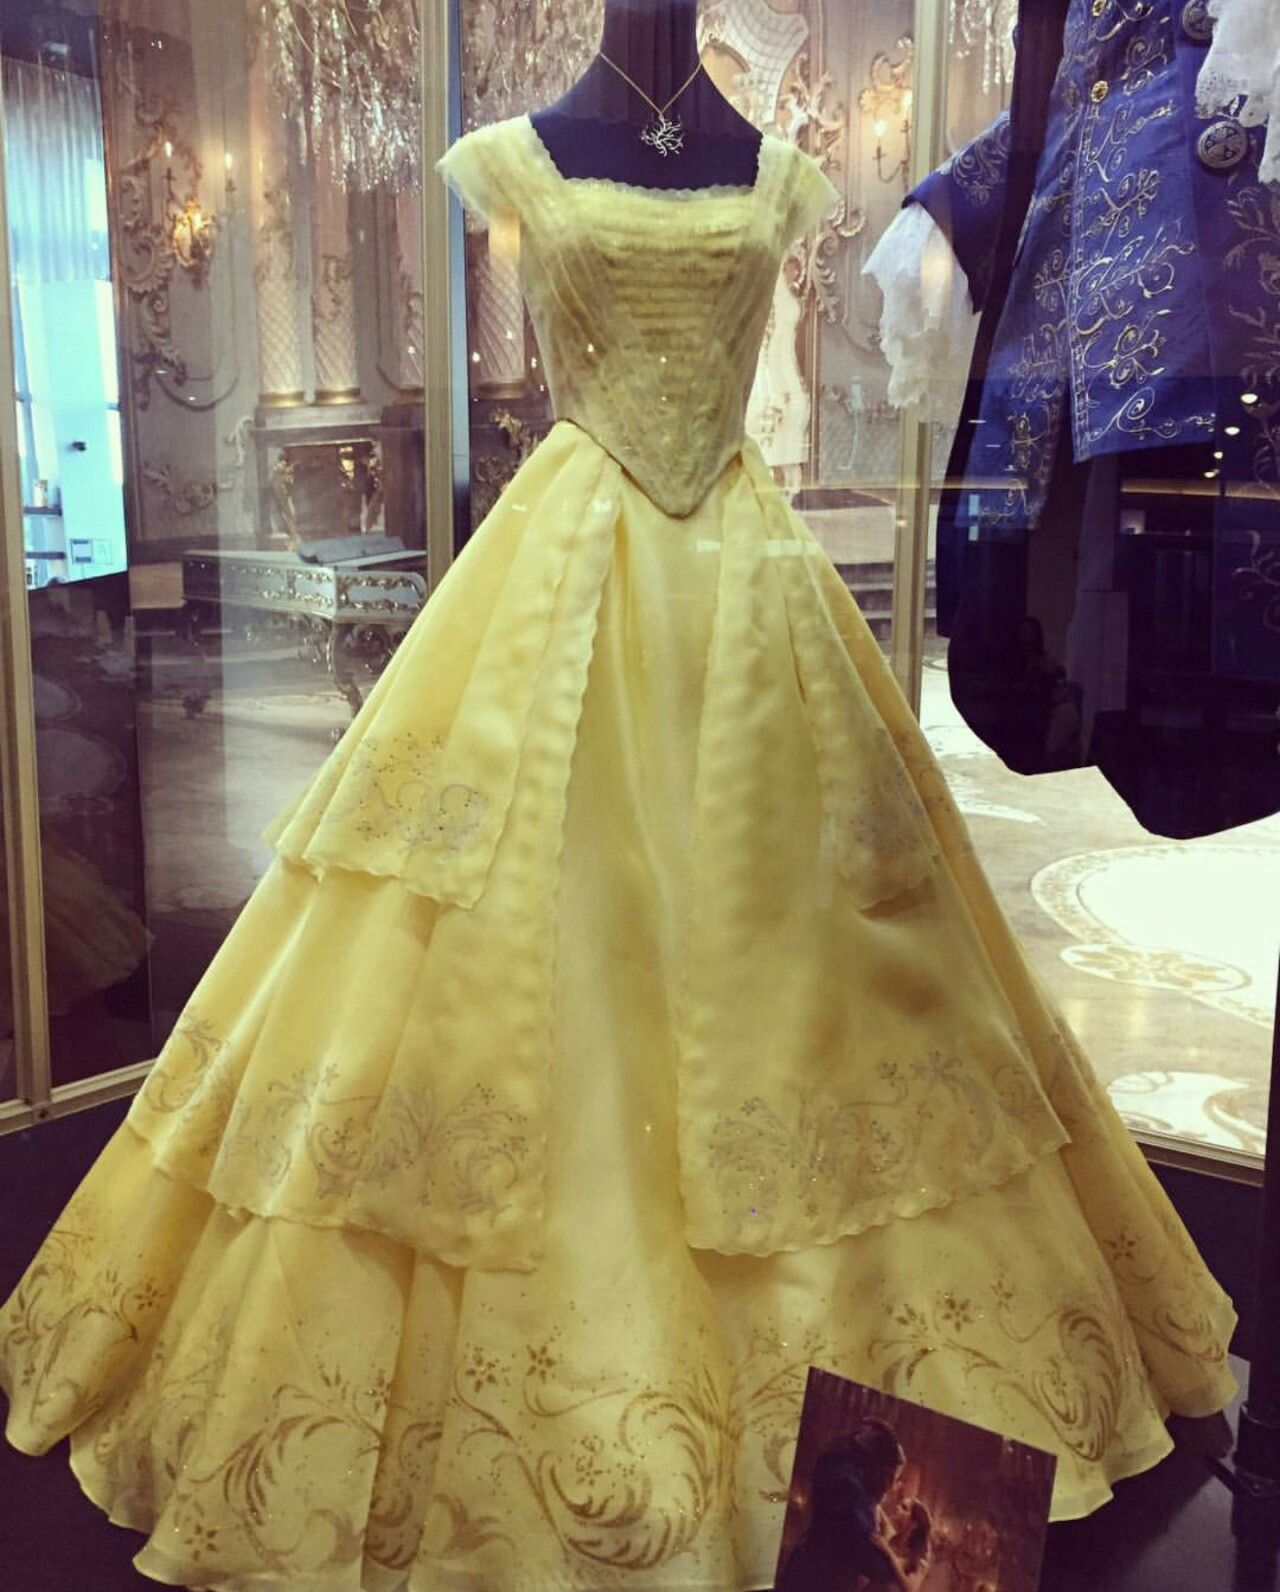 Belle's Ballgown From Disney's Live-action Beauty And The